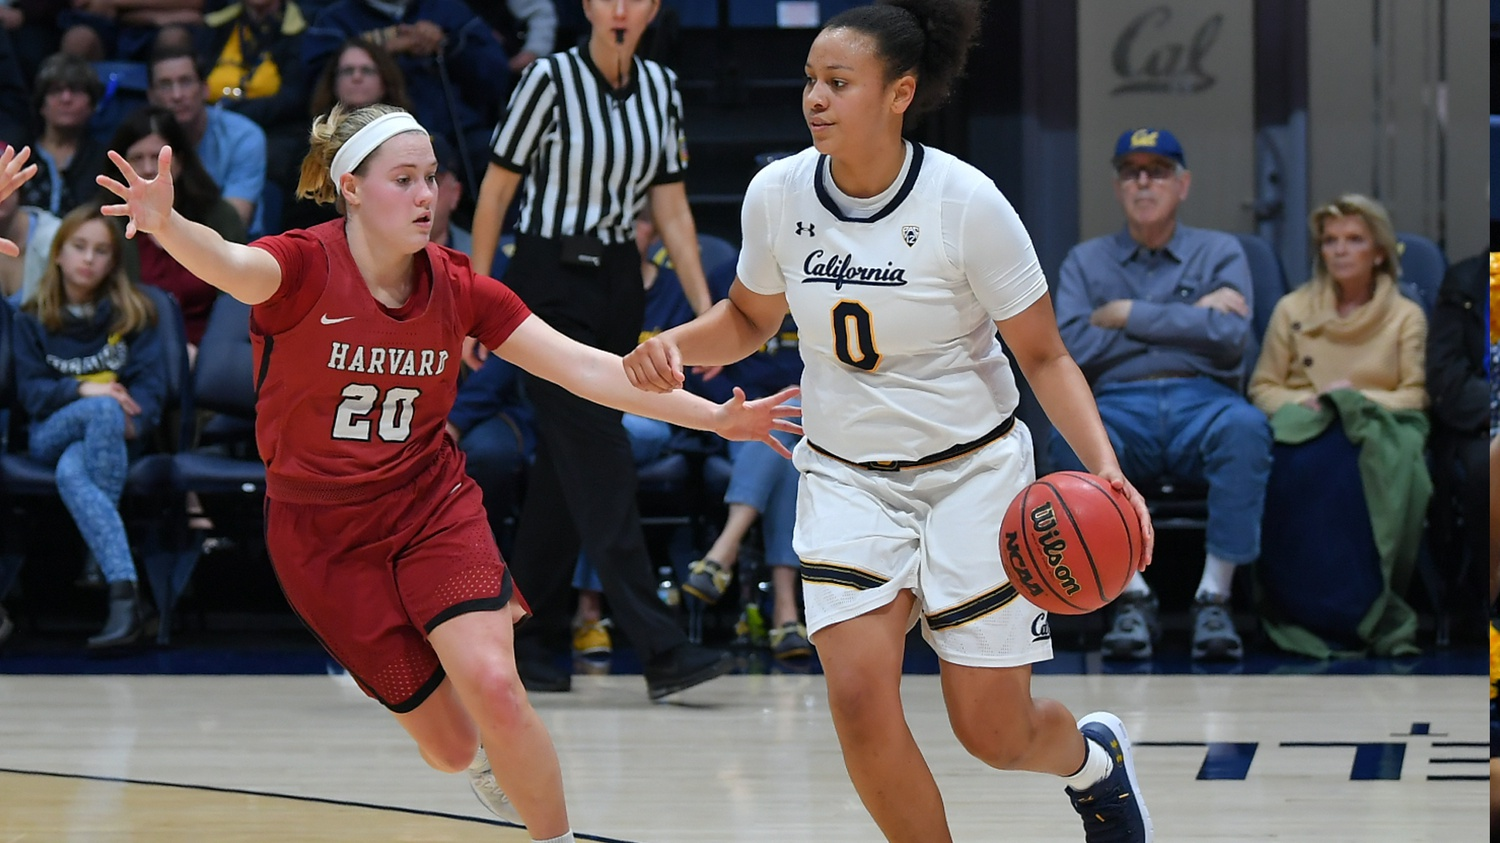 McKenzie Forbes, while playing for the Cal Golden Bears, dribbles at the top of the key as Havard's Madeline Raster defends.